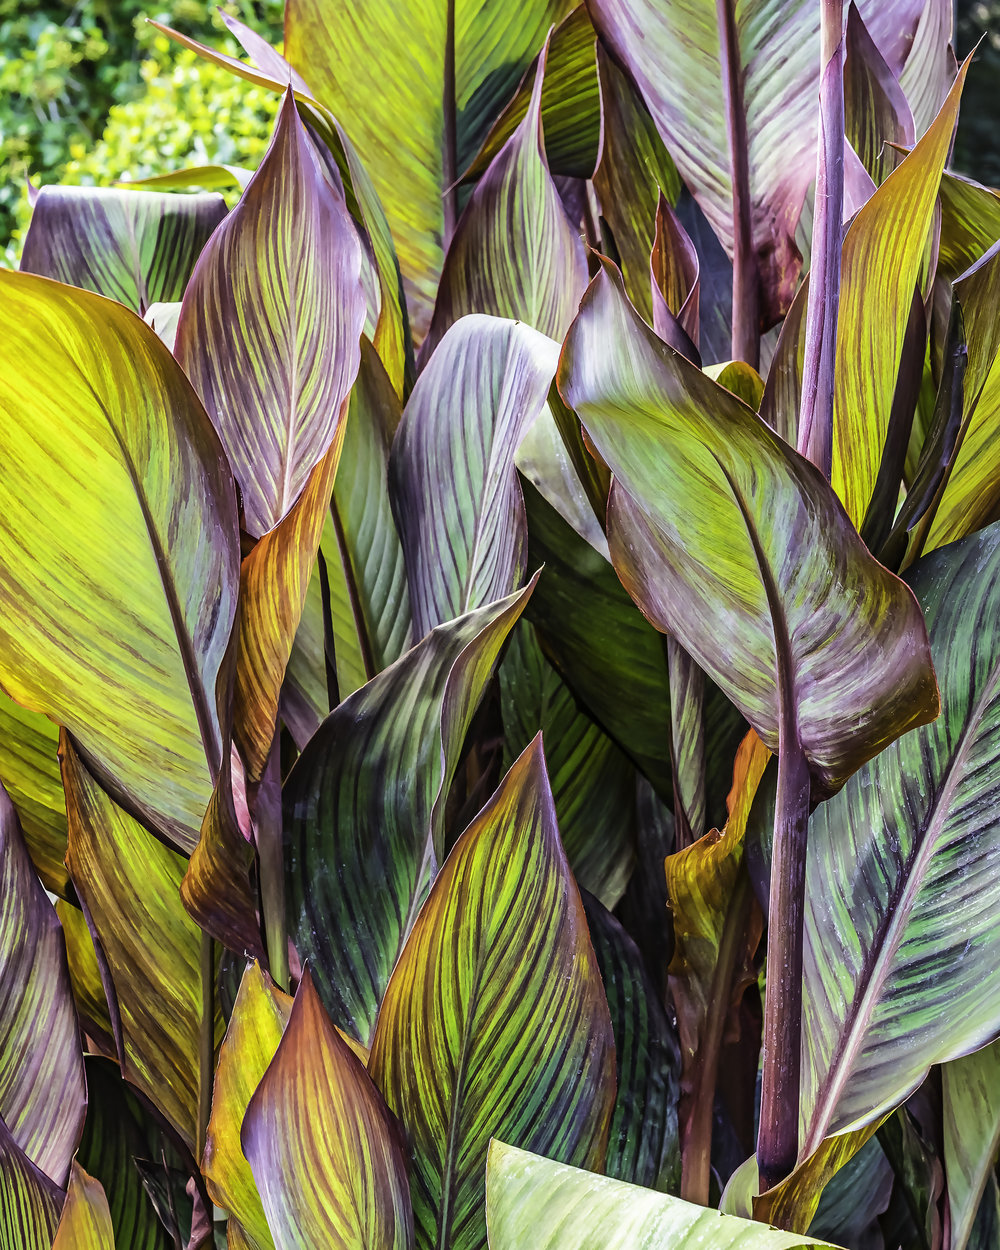 A Riot of Canna Lilly Leaves